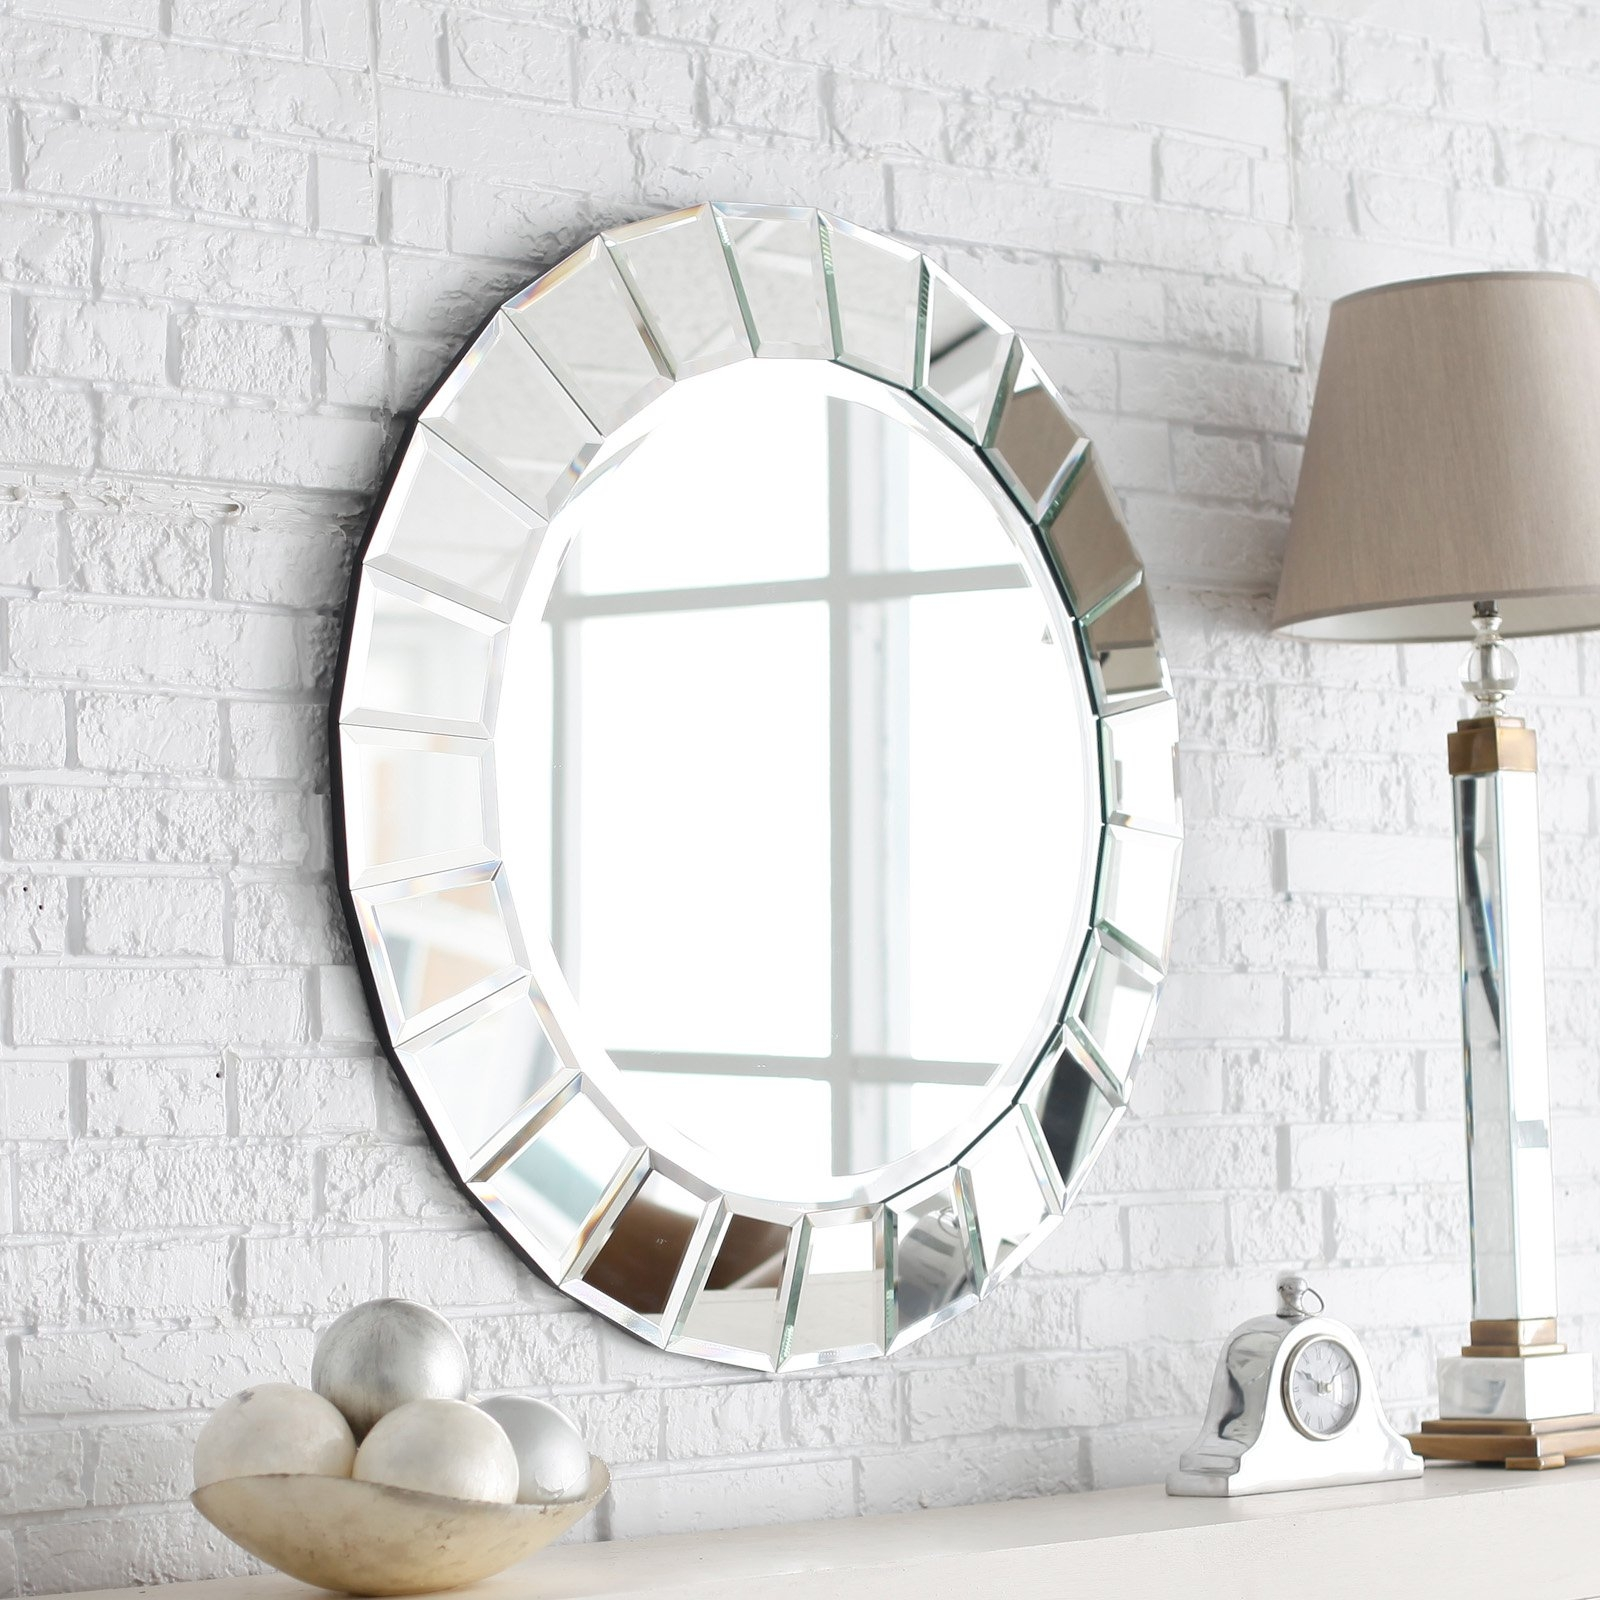 Dcor Wonderland Frameless Crystal Wall Mirror 235w X 315h In In Round Venetian Mirror (Image 3 of 15)